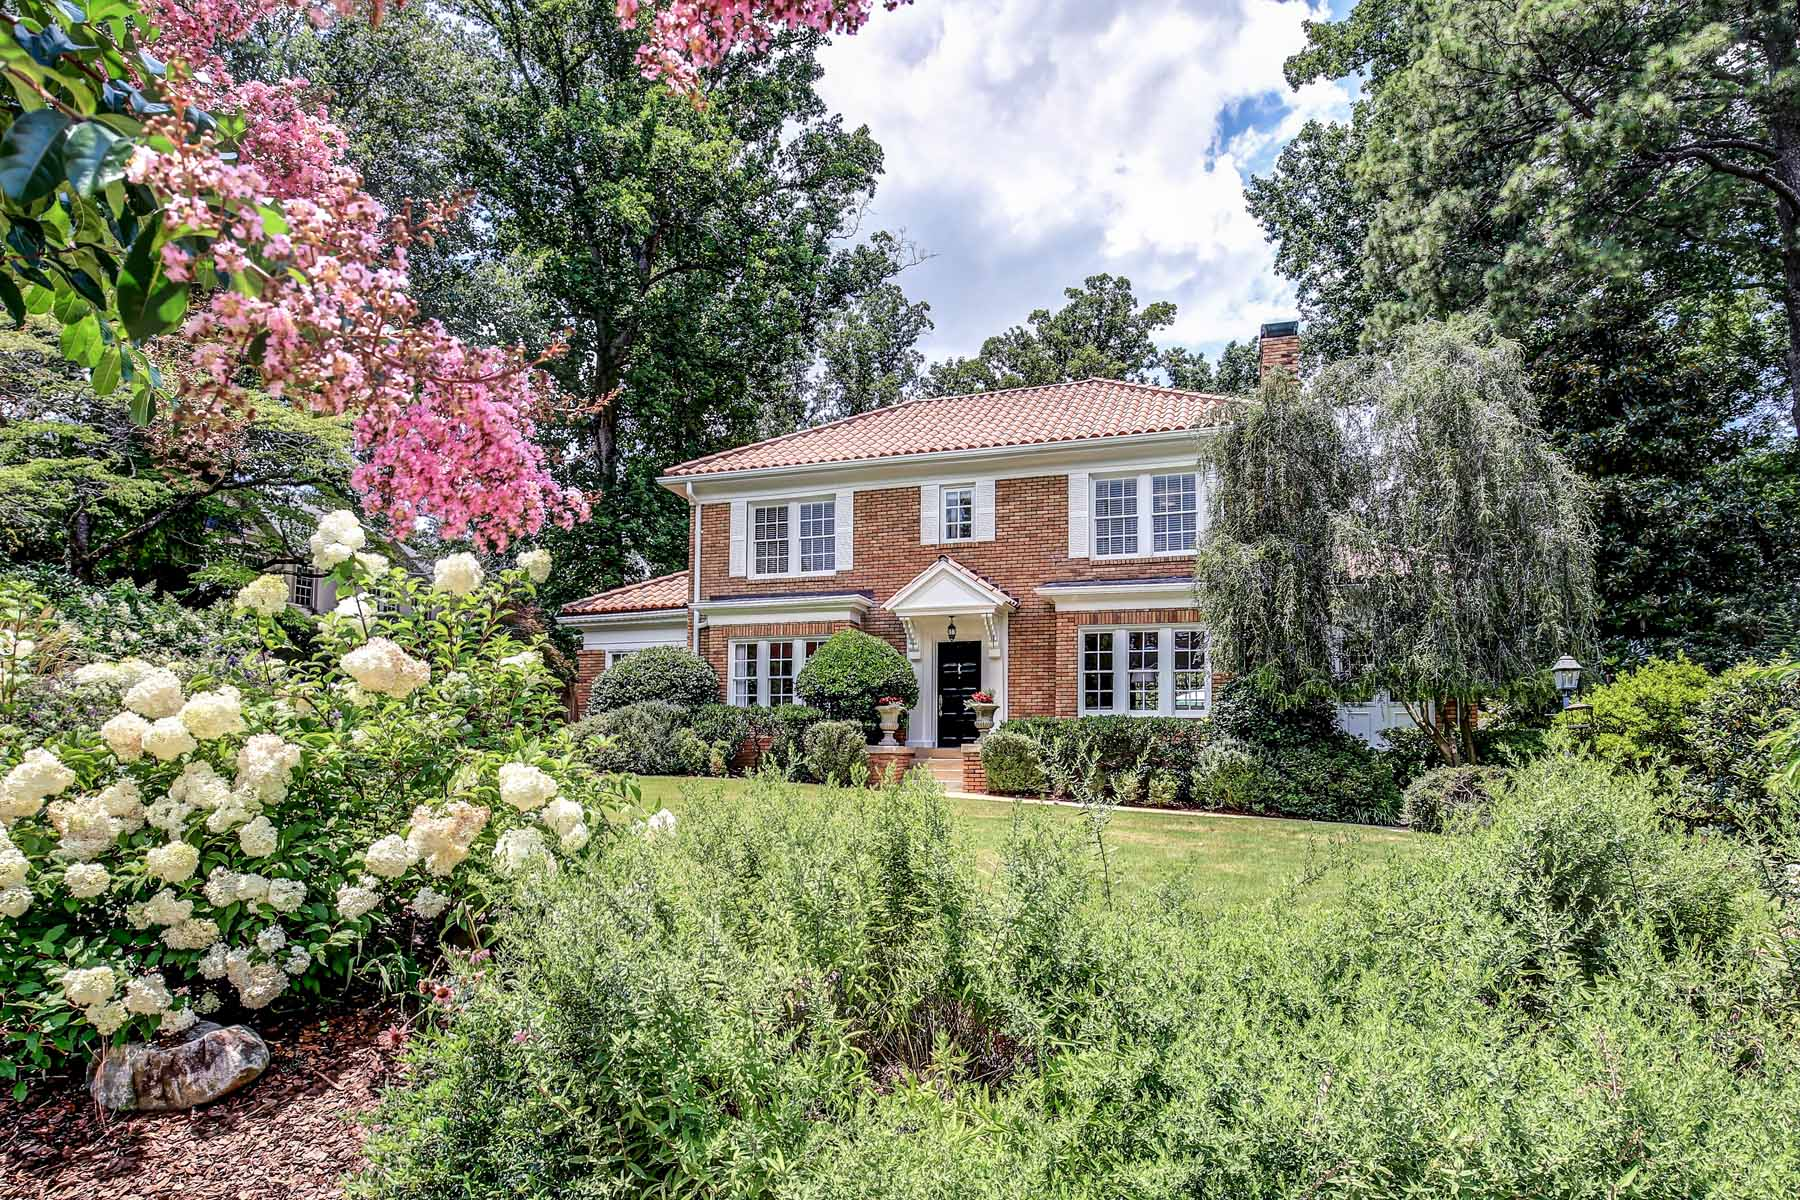 단독 가정 주택 용 매매 에 Historic Druid Hills Renovated 1920 Two-Story Brick Home 1108 Oxford Road NE Druid Hills, Atlanta, 조지아, 30306 미국